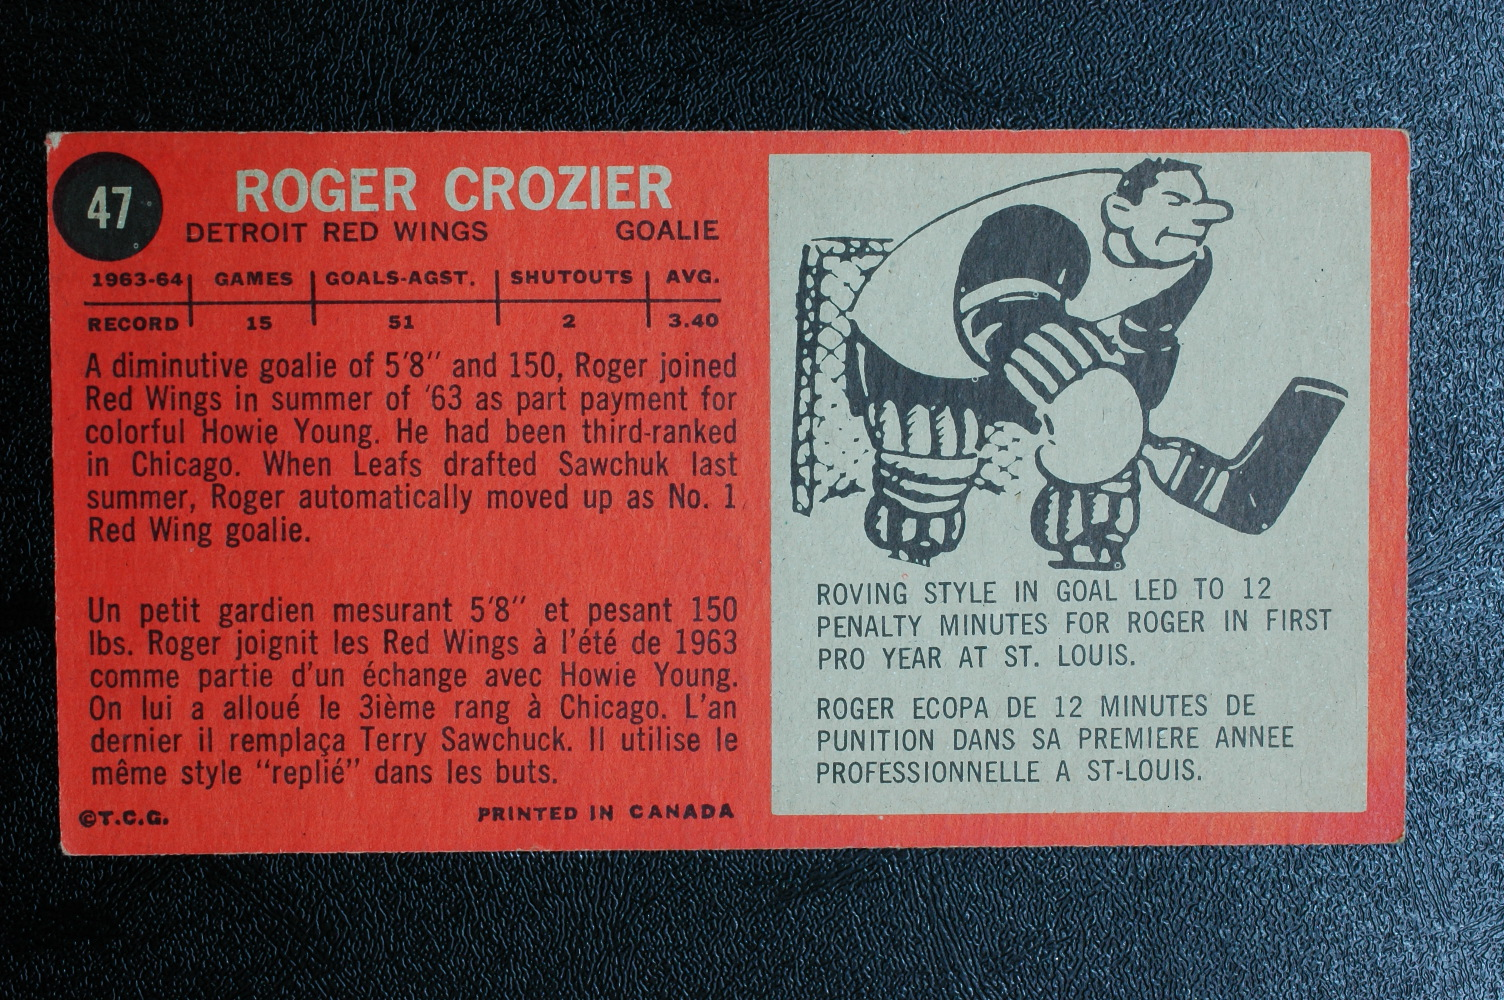 1964-65 Topps #47 Roger Crozier RC back image